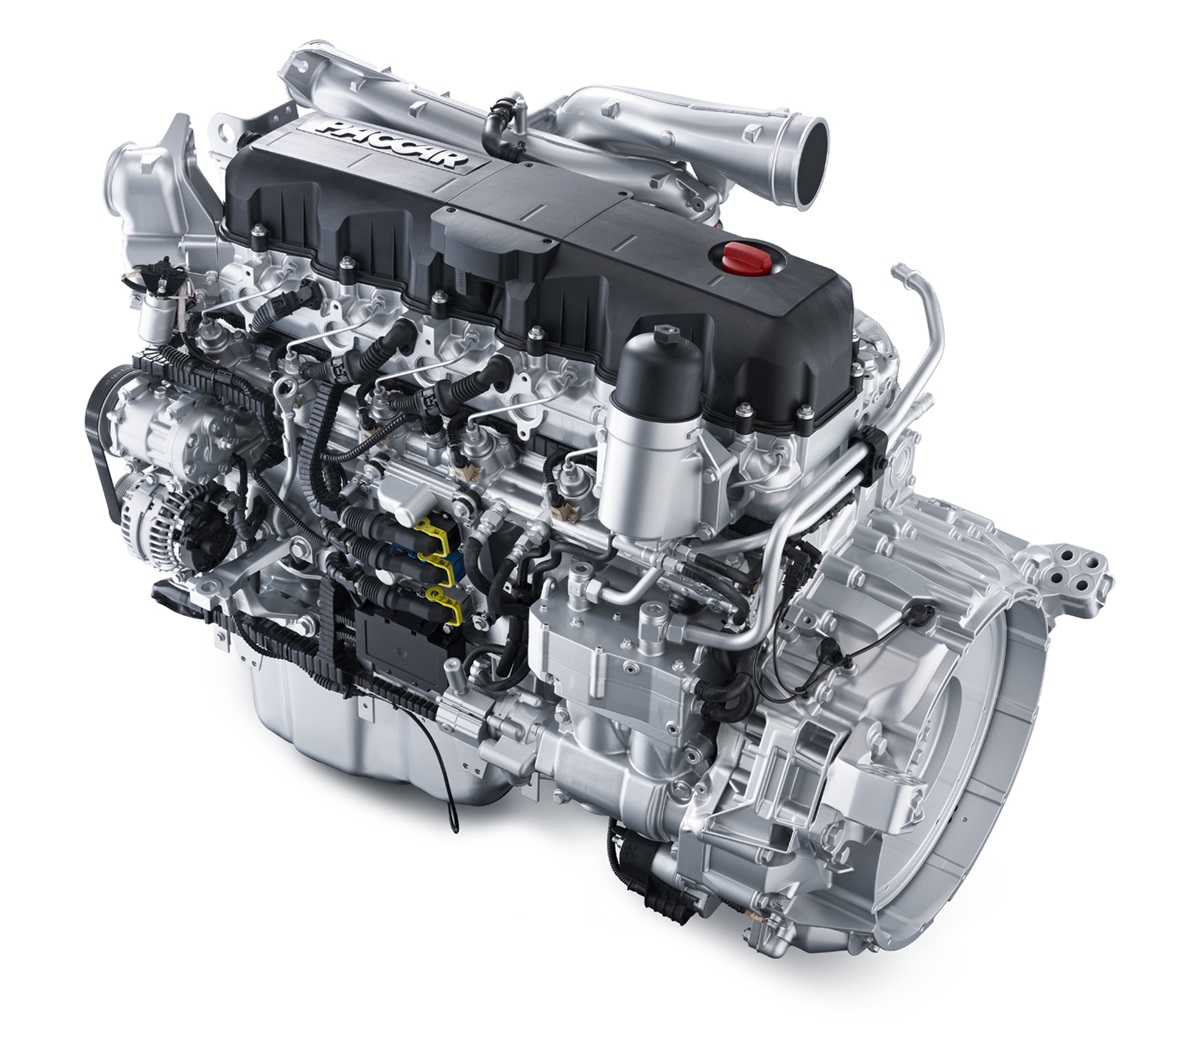 MX engine